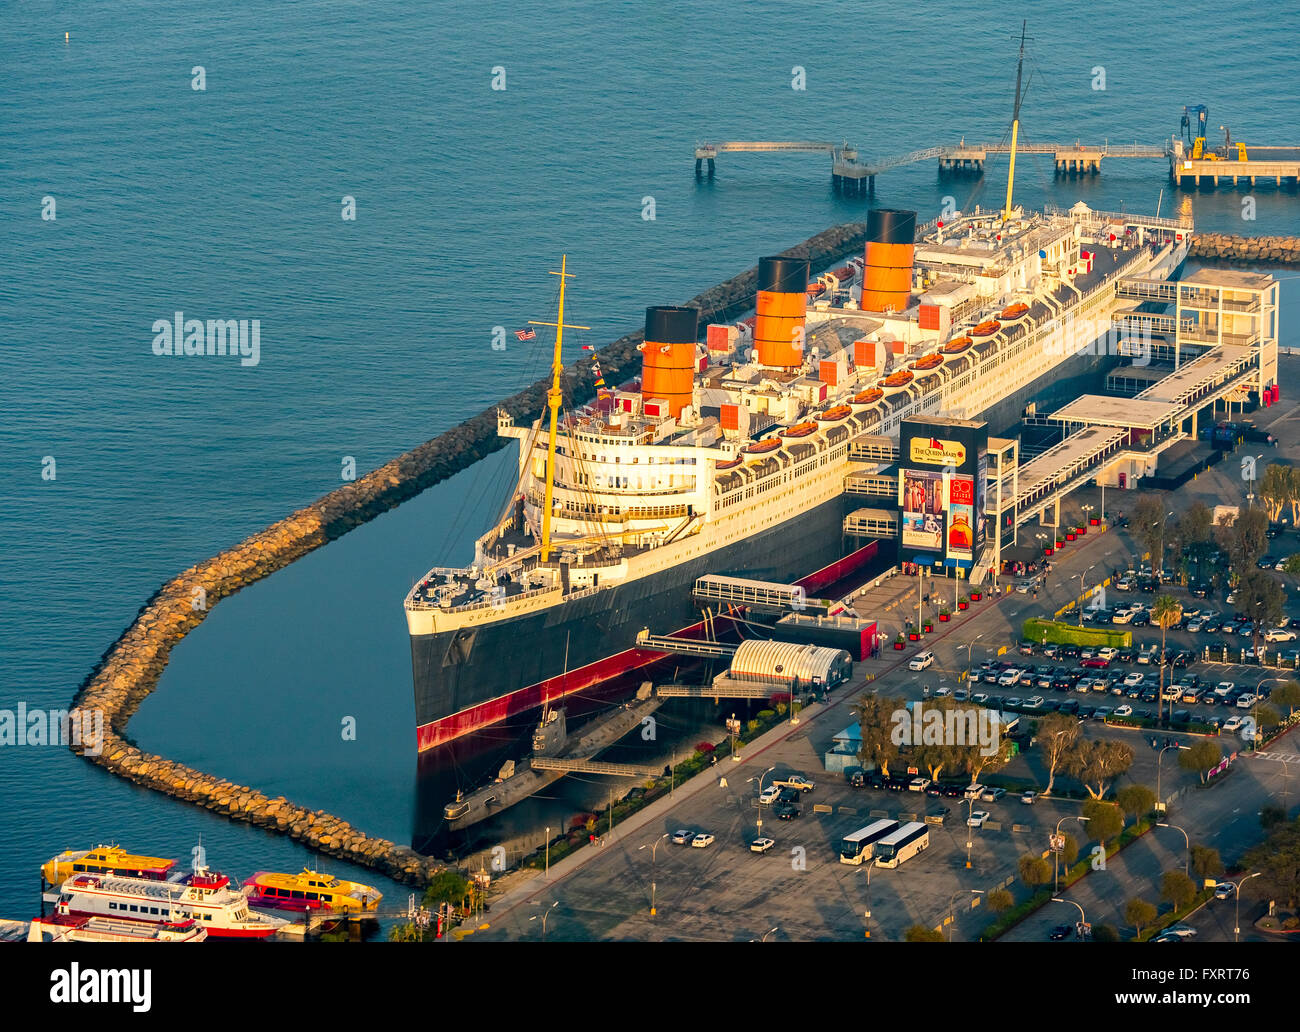 Luftaufnahme Rms Queen Mary Ozeandampfer Queen Mary Hotel In Long